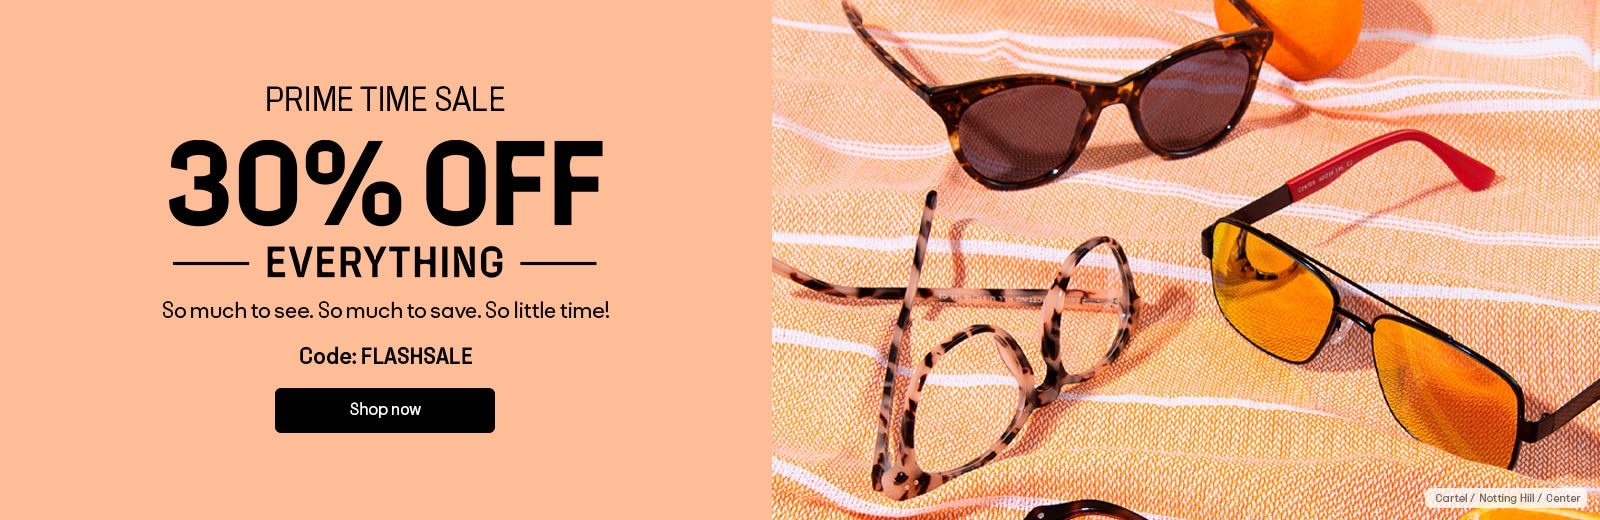 30% OFF EVERYTHING So much to see. So much to save. So little time!  Code: FLASHSALE